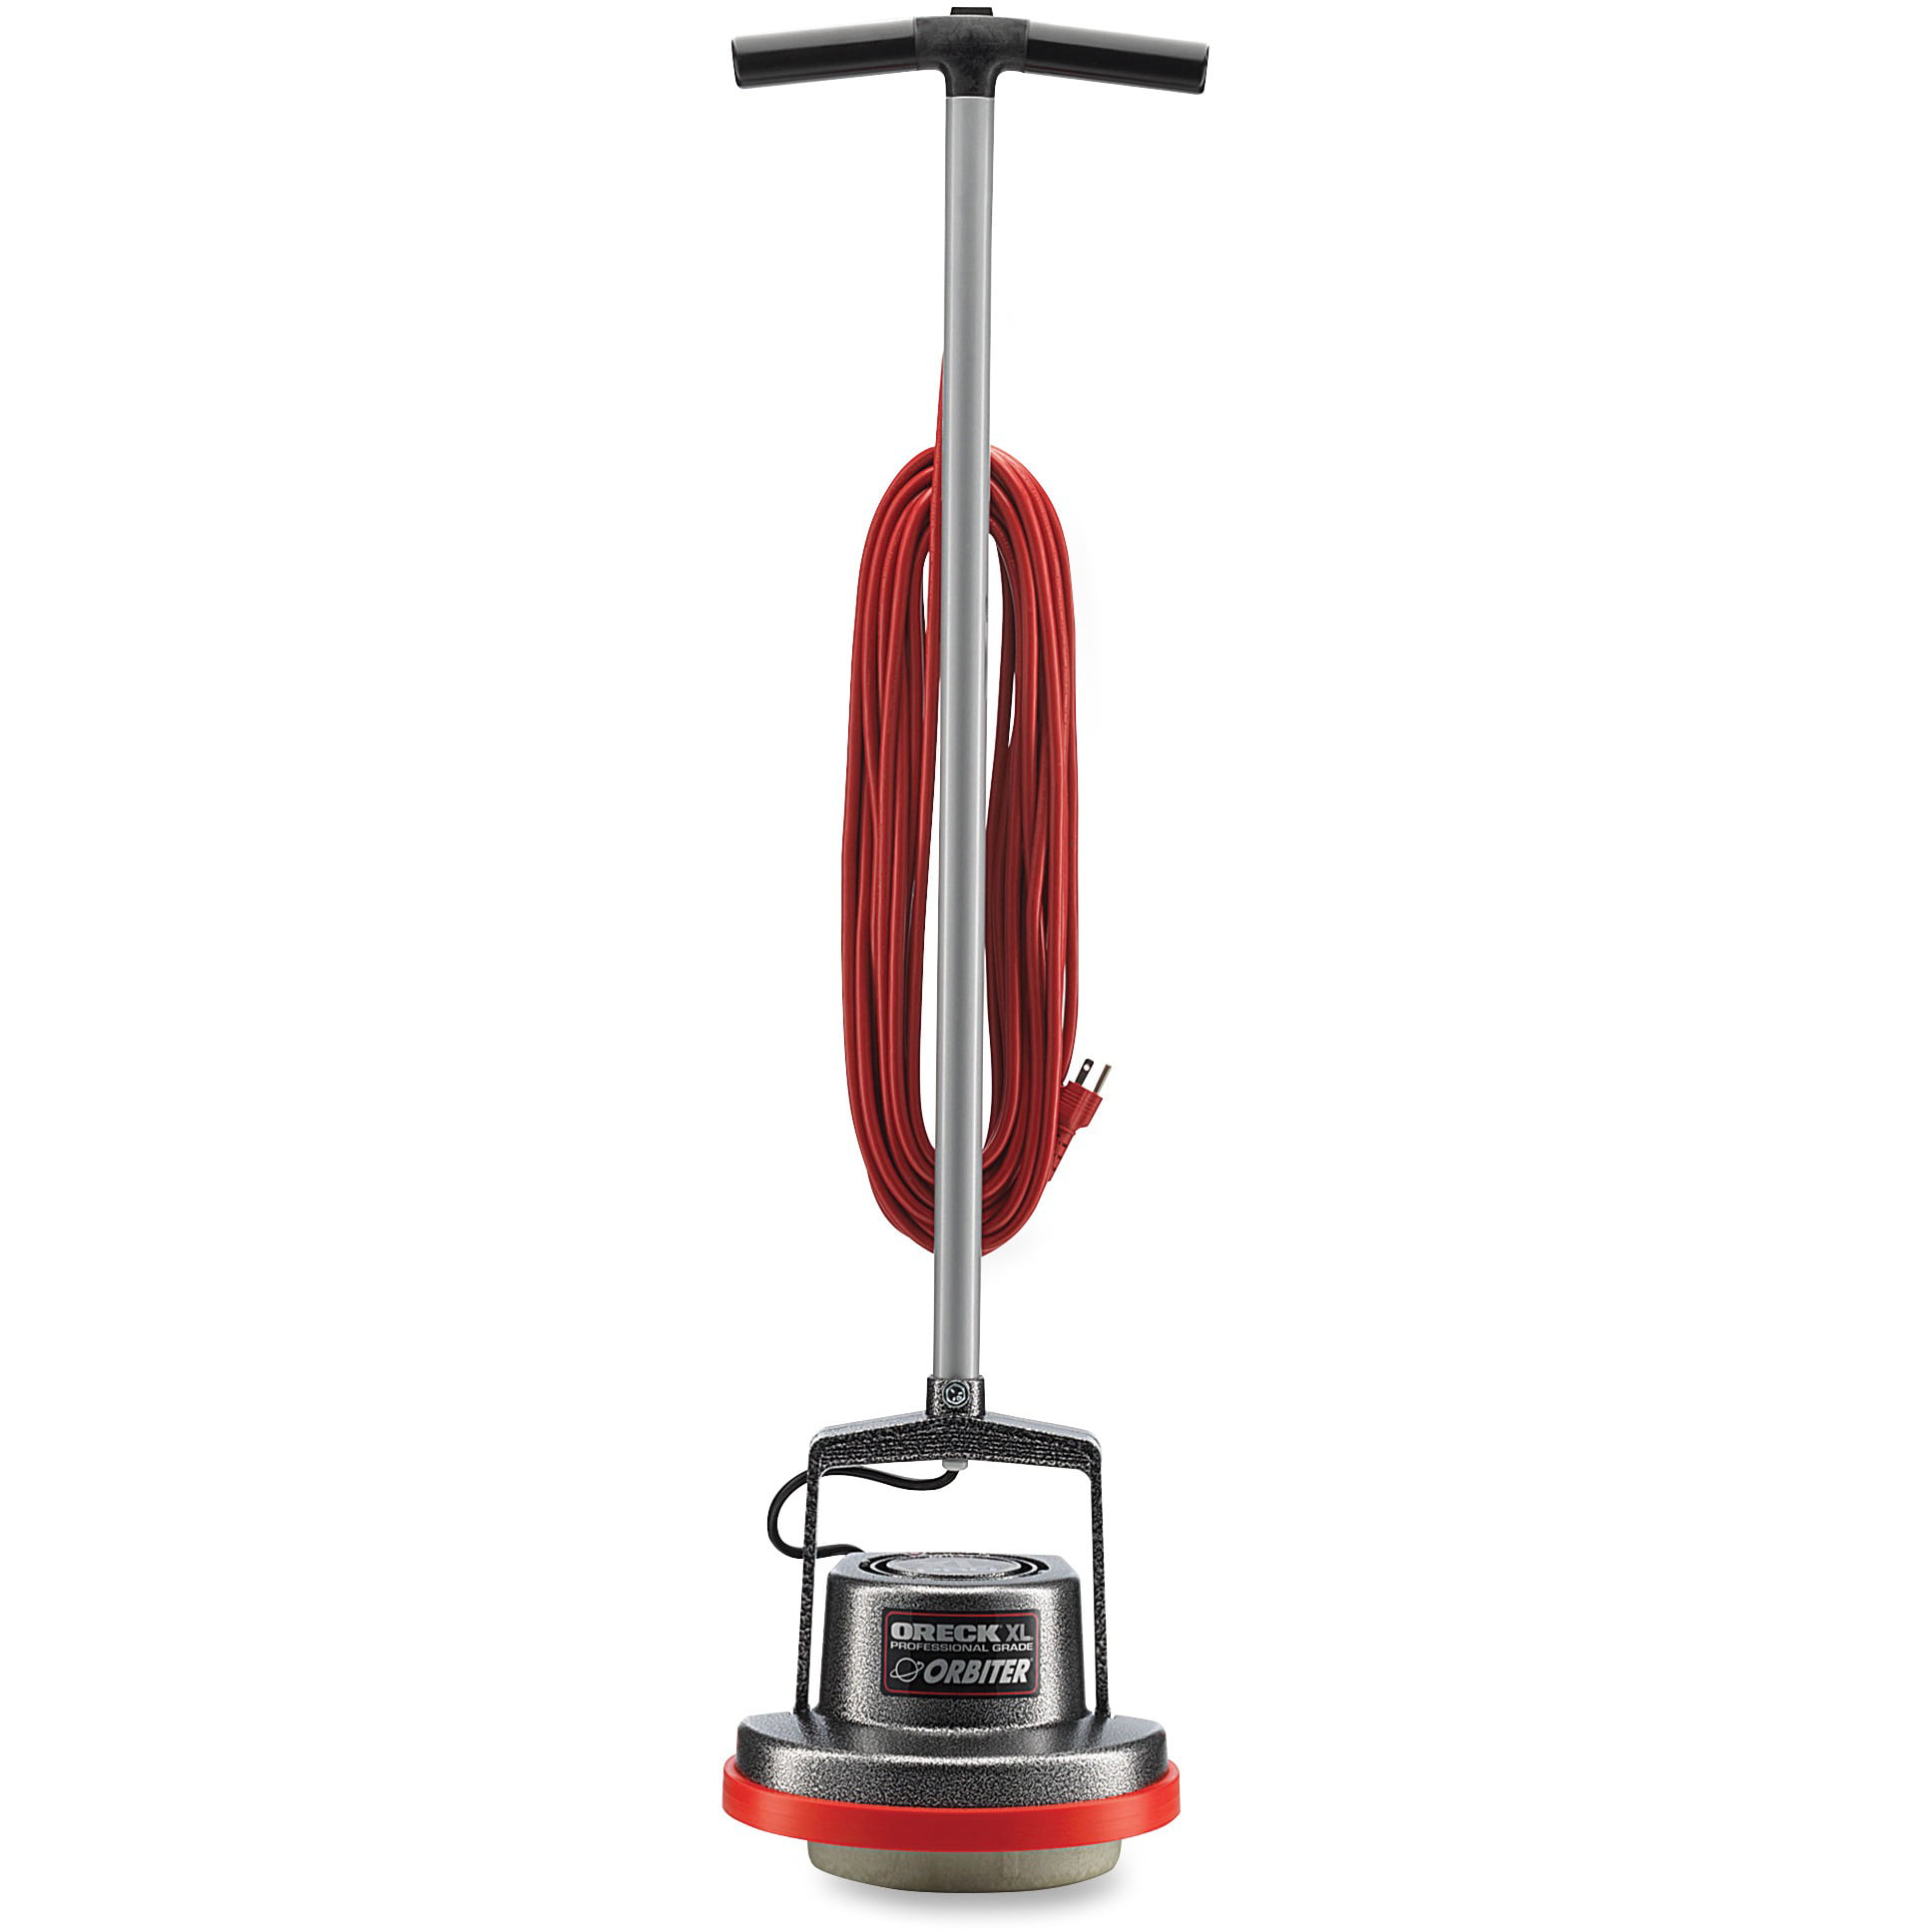 Oreck Commercial Orb550mc Orbiter Floor Machine Walmart Com